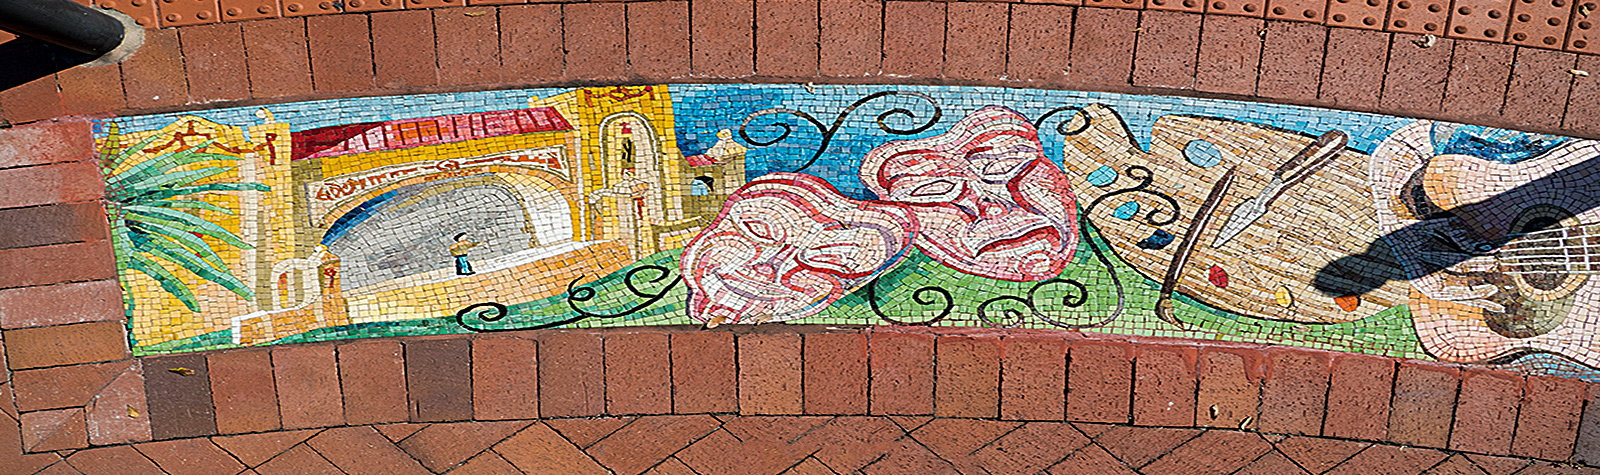 street mosaic illustrating the arts